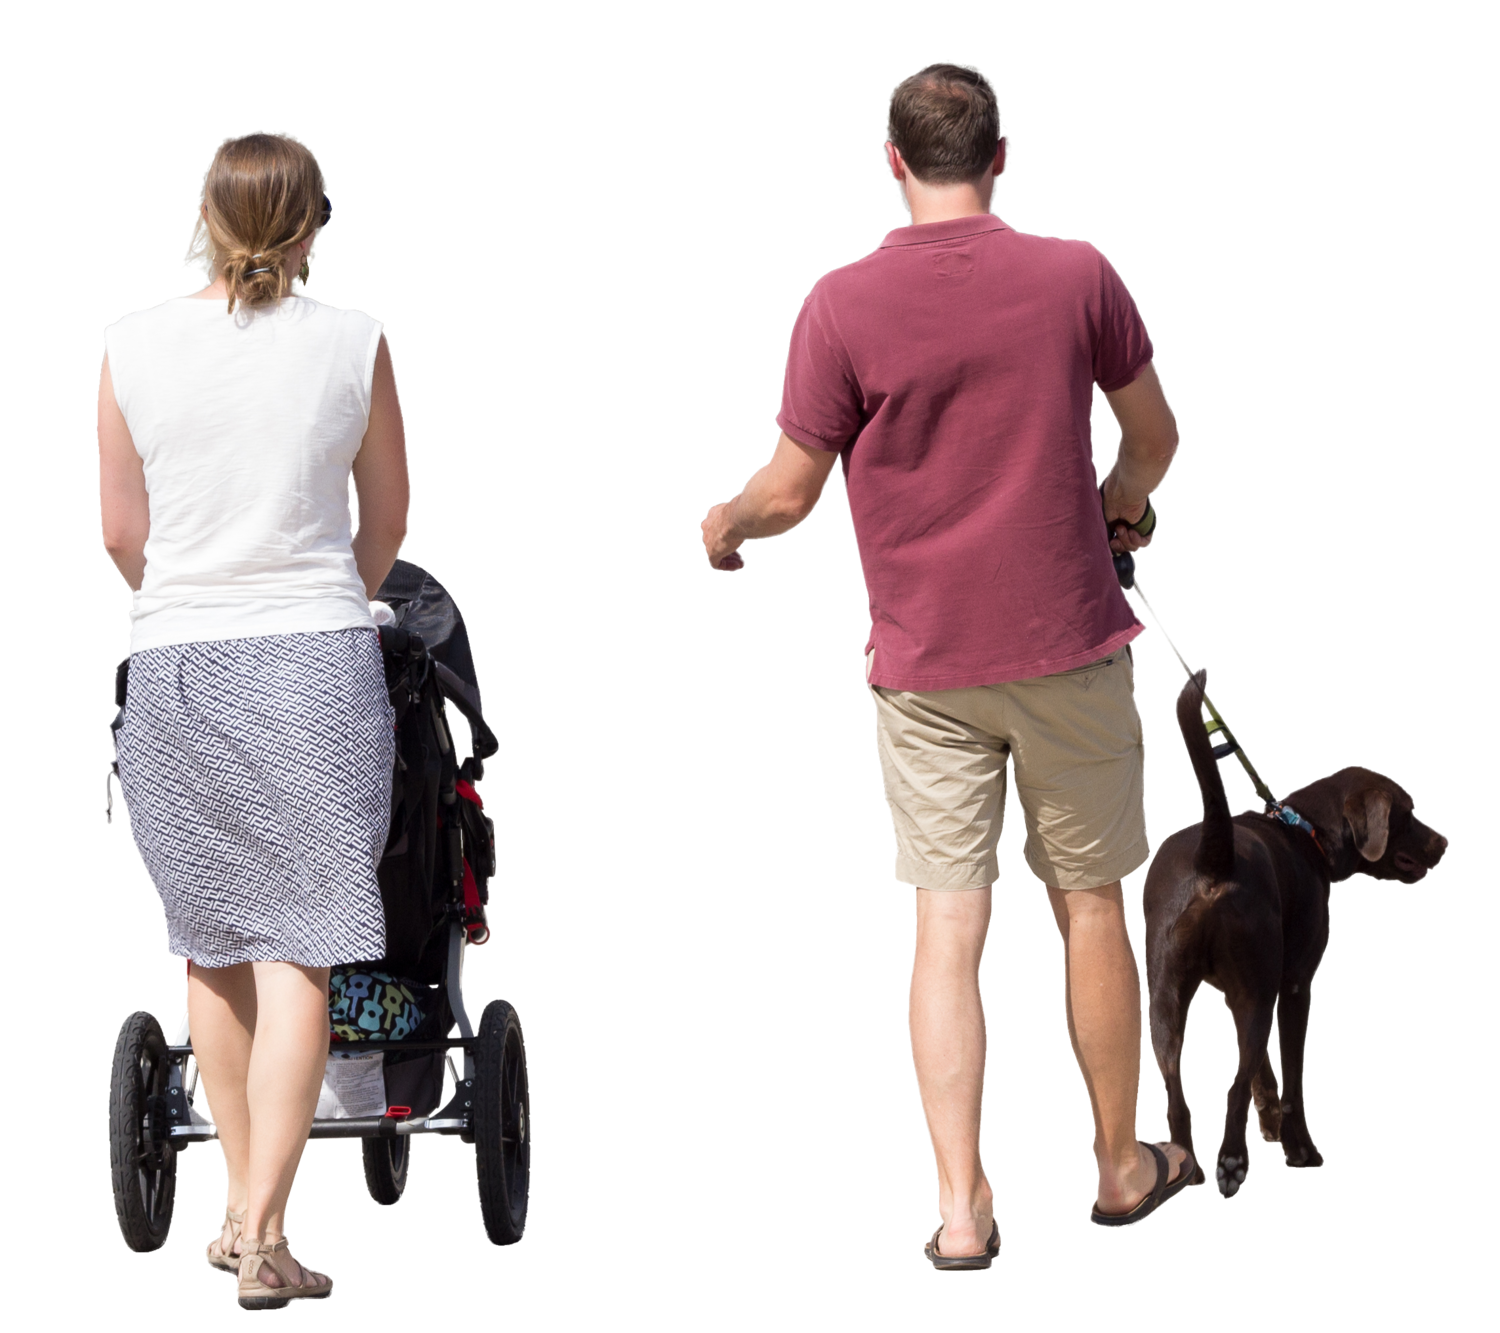 Family walking png. Img material pinterest photoshop